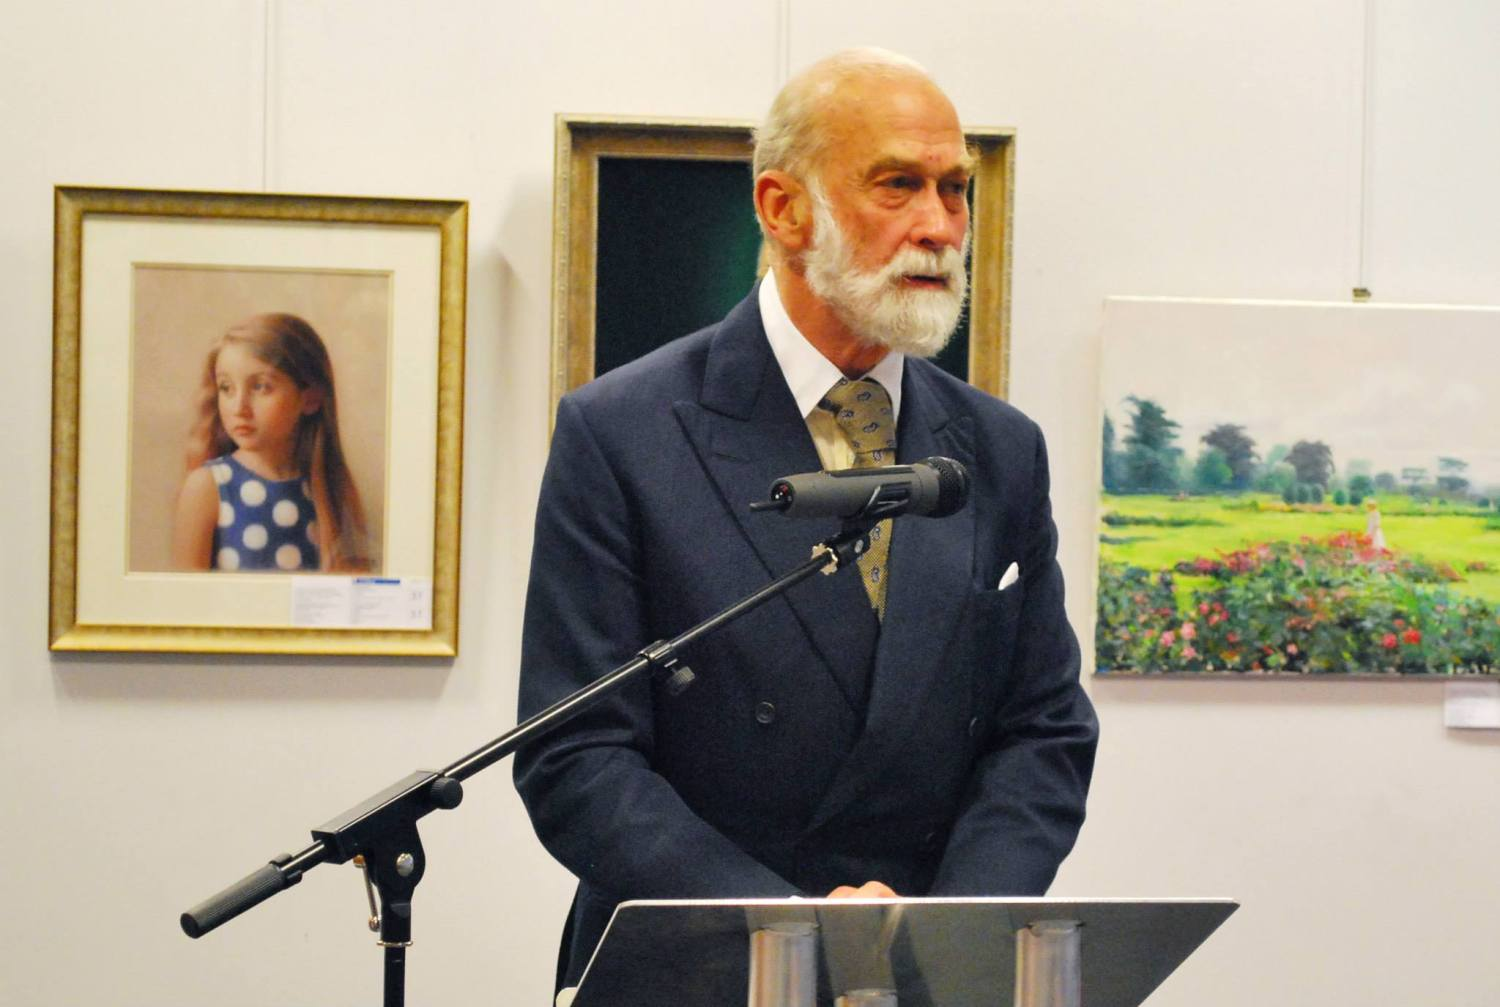 HRH Prince Michael of Kent at Rossotrudnichestvo